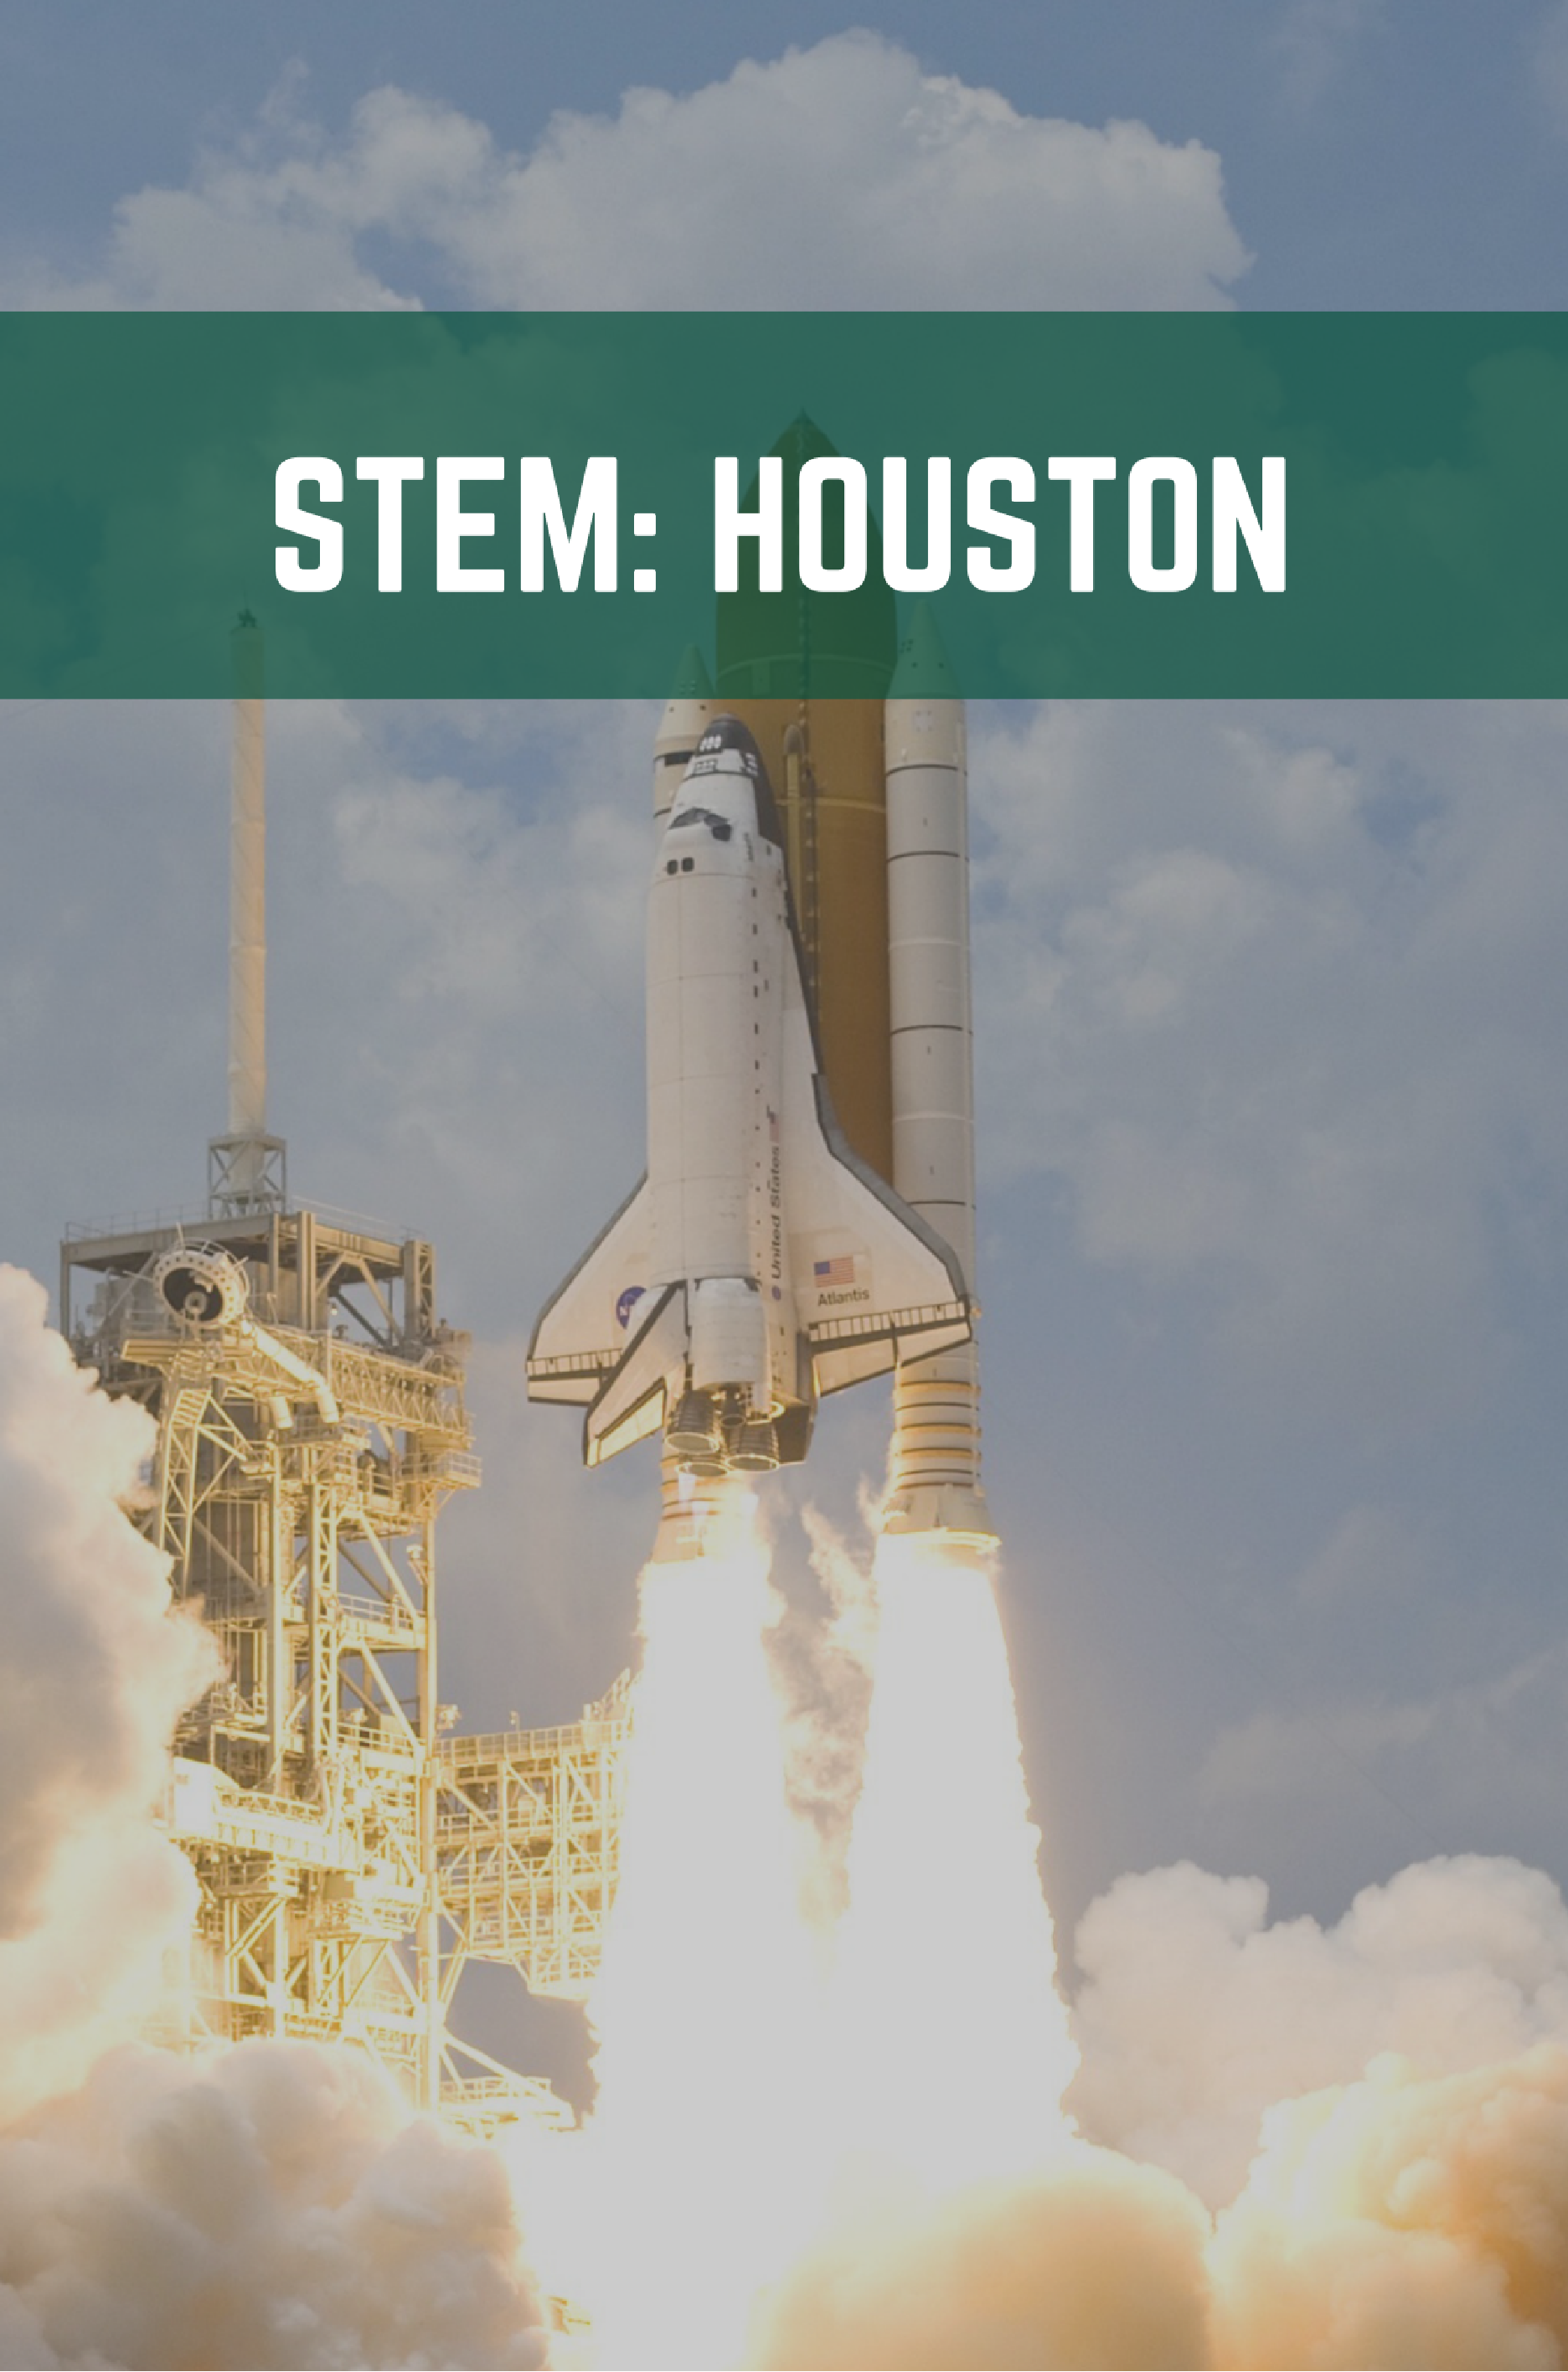 STEM: Houston